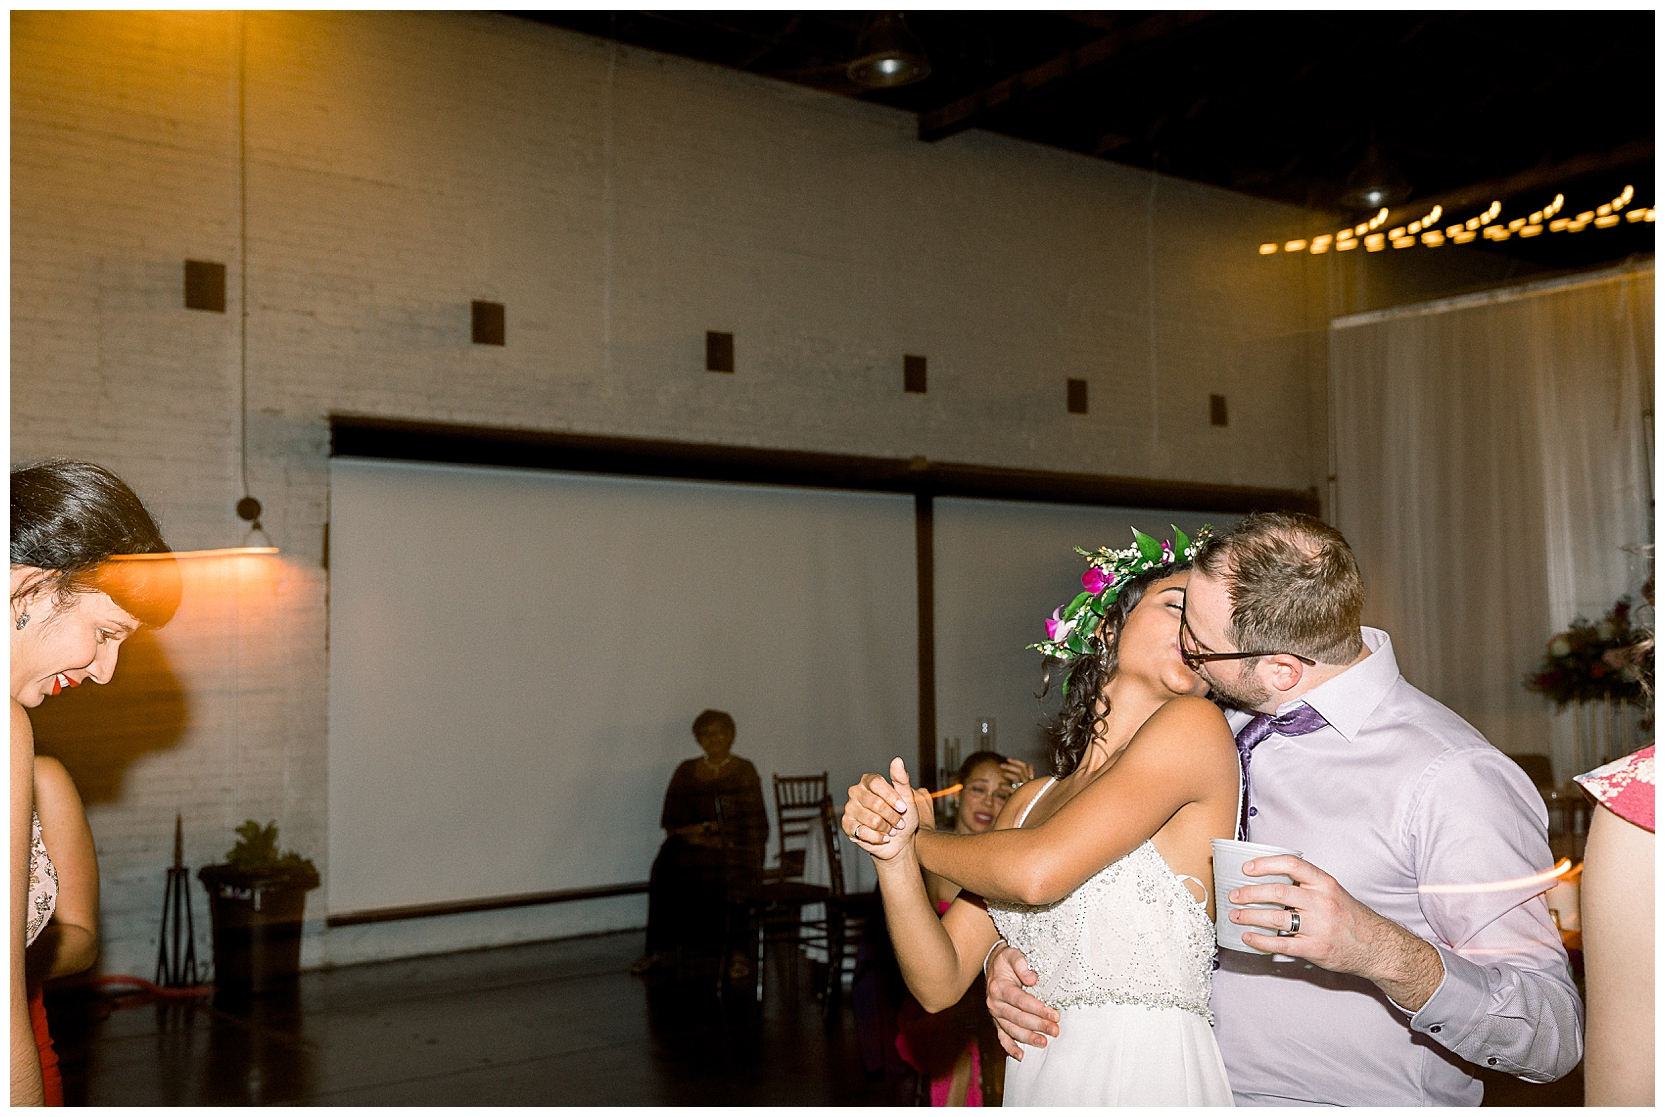 jessicafredericks_lakeland_tampa_wedding_purple_crazy hour_0108.jpg